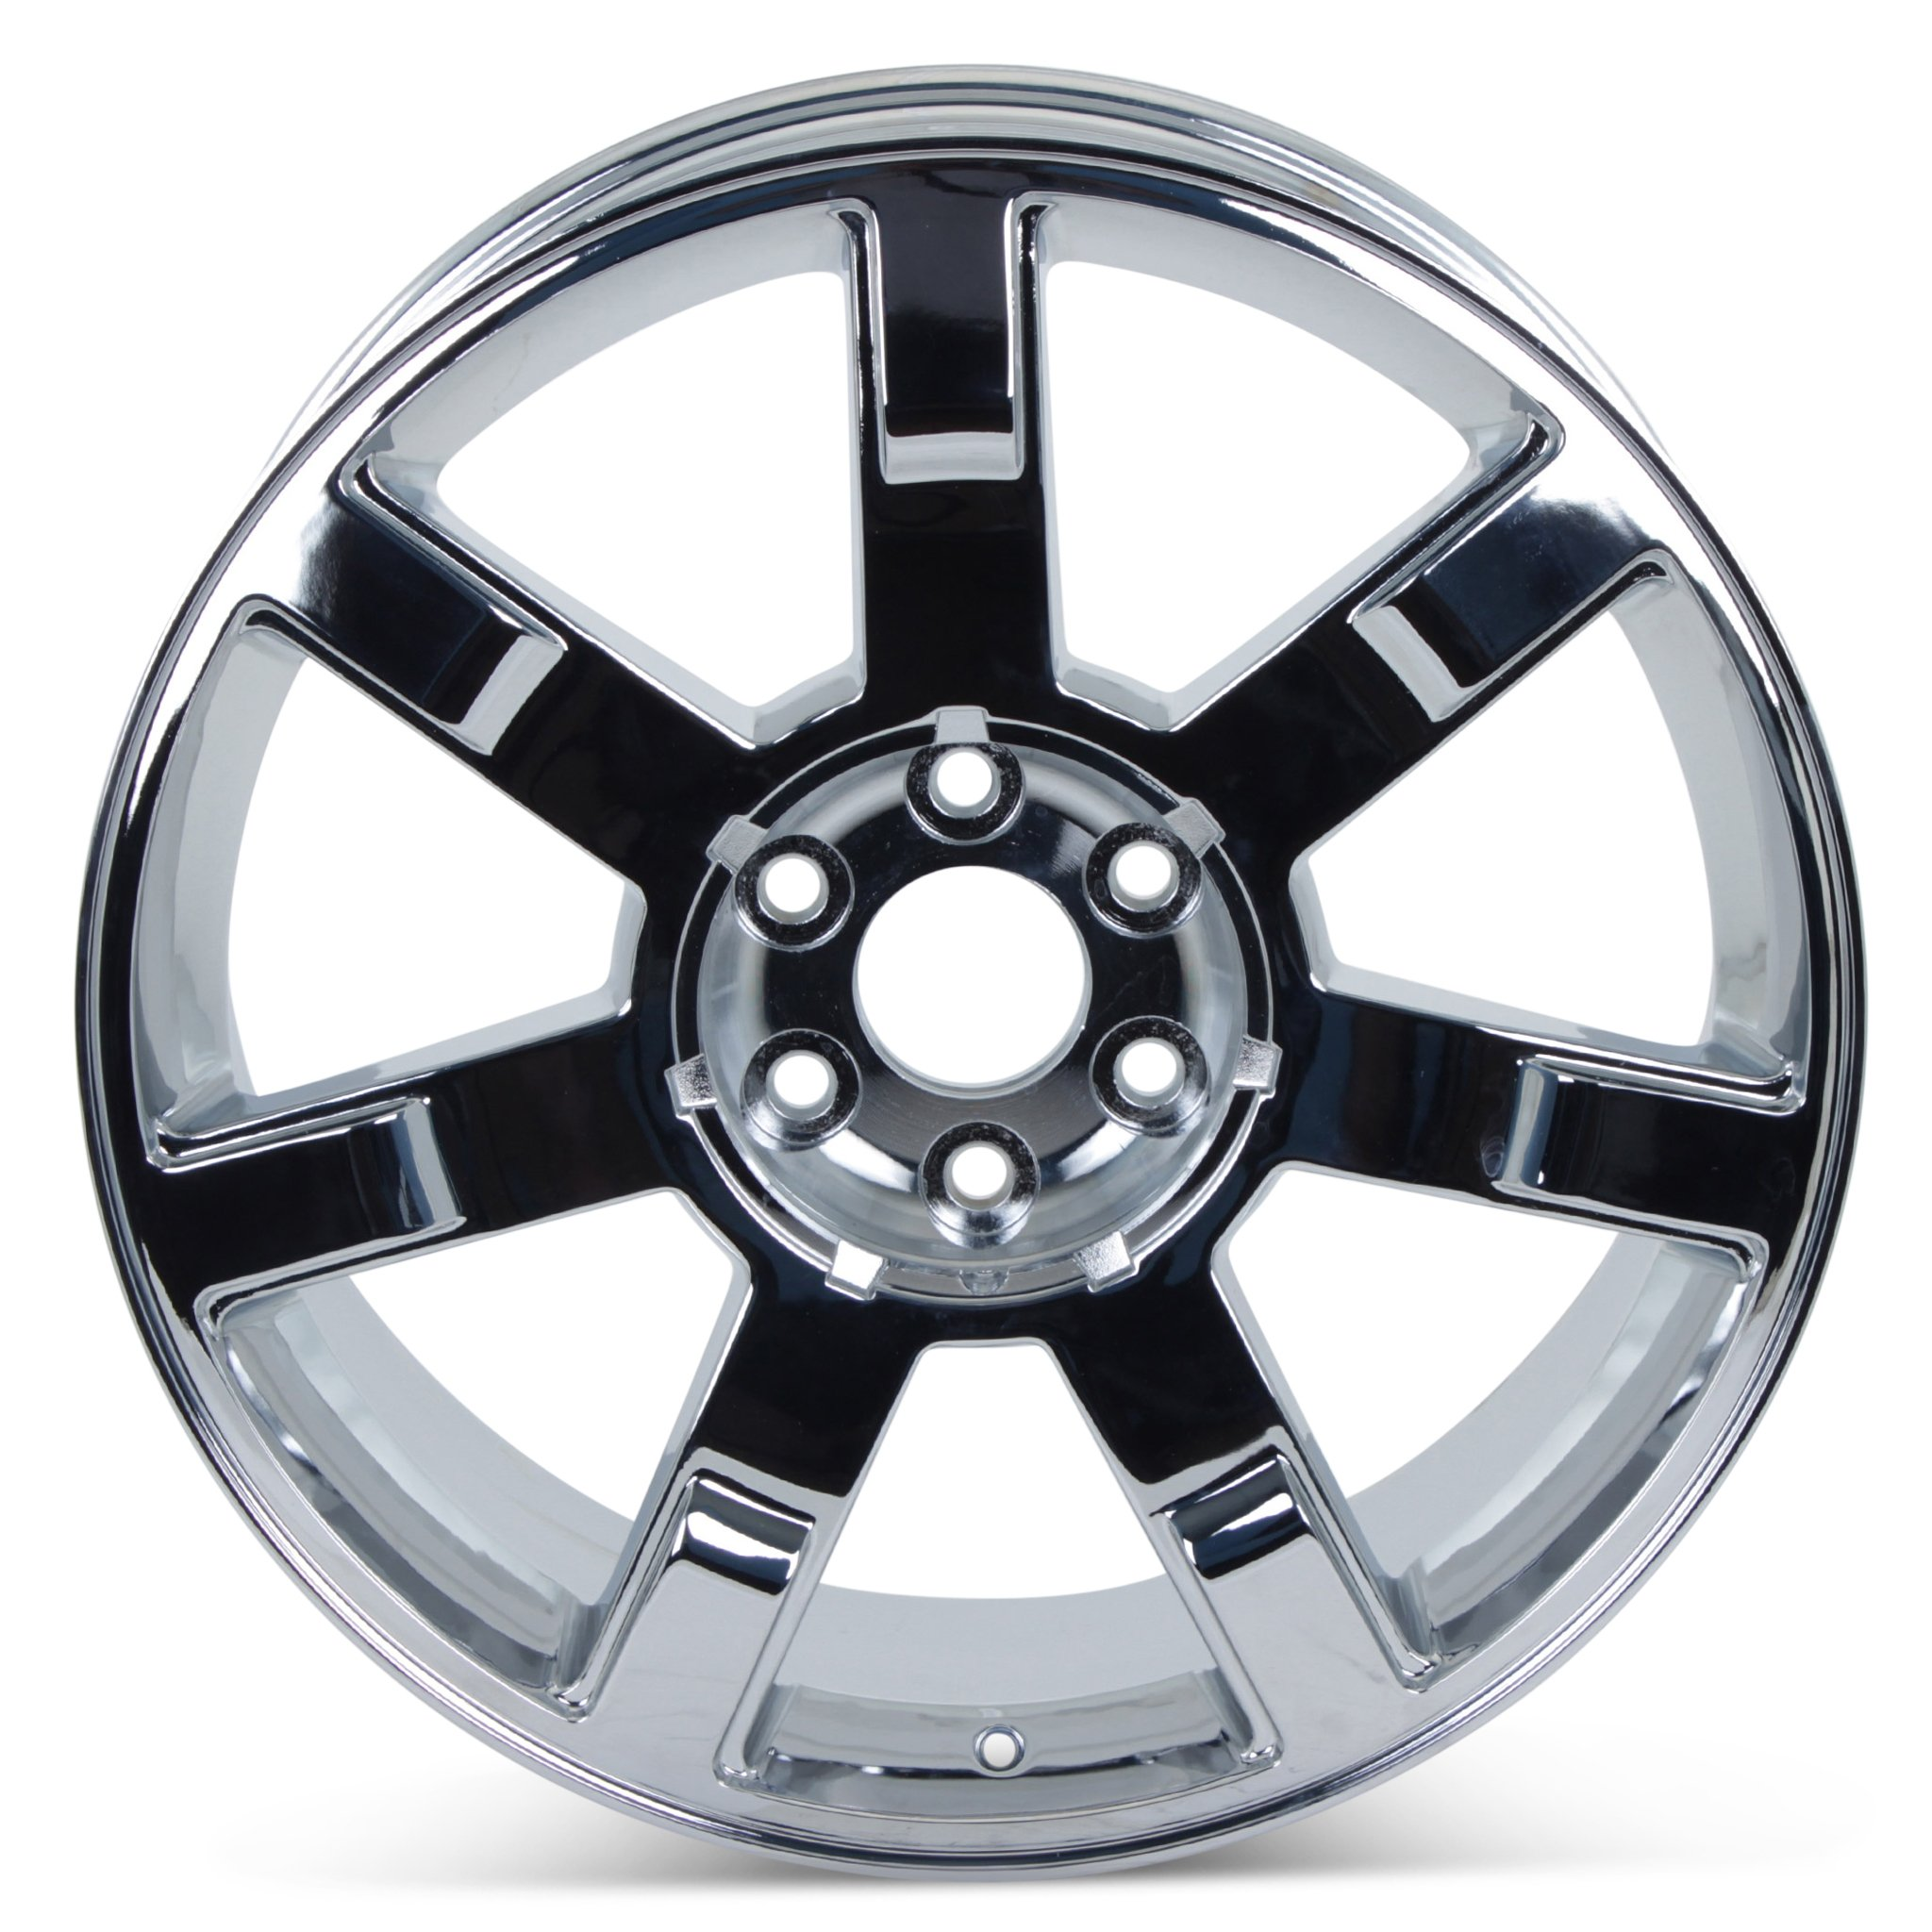 New 22'' x 9'' Replacement Wheel for Cadillac Escalade 2007-2013 Rim Chrome 5309 by Cadillac (Image #3)